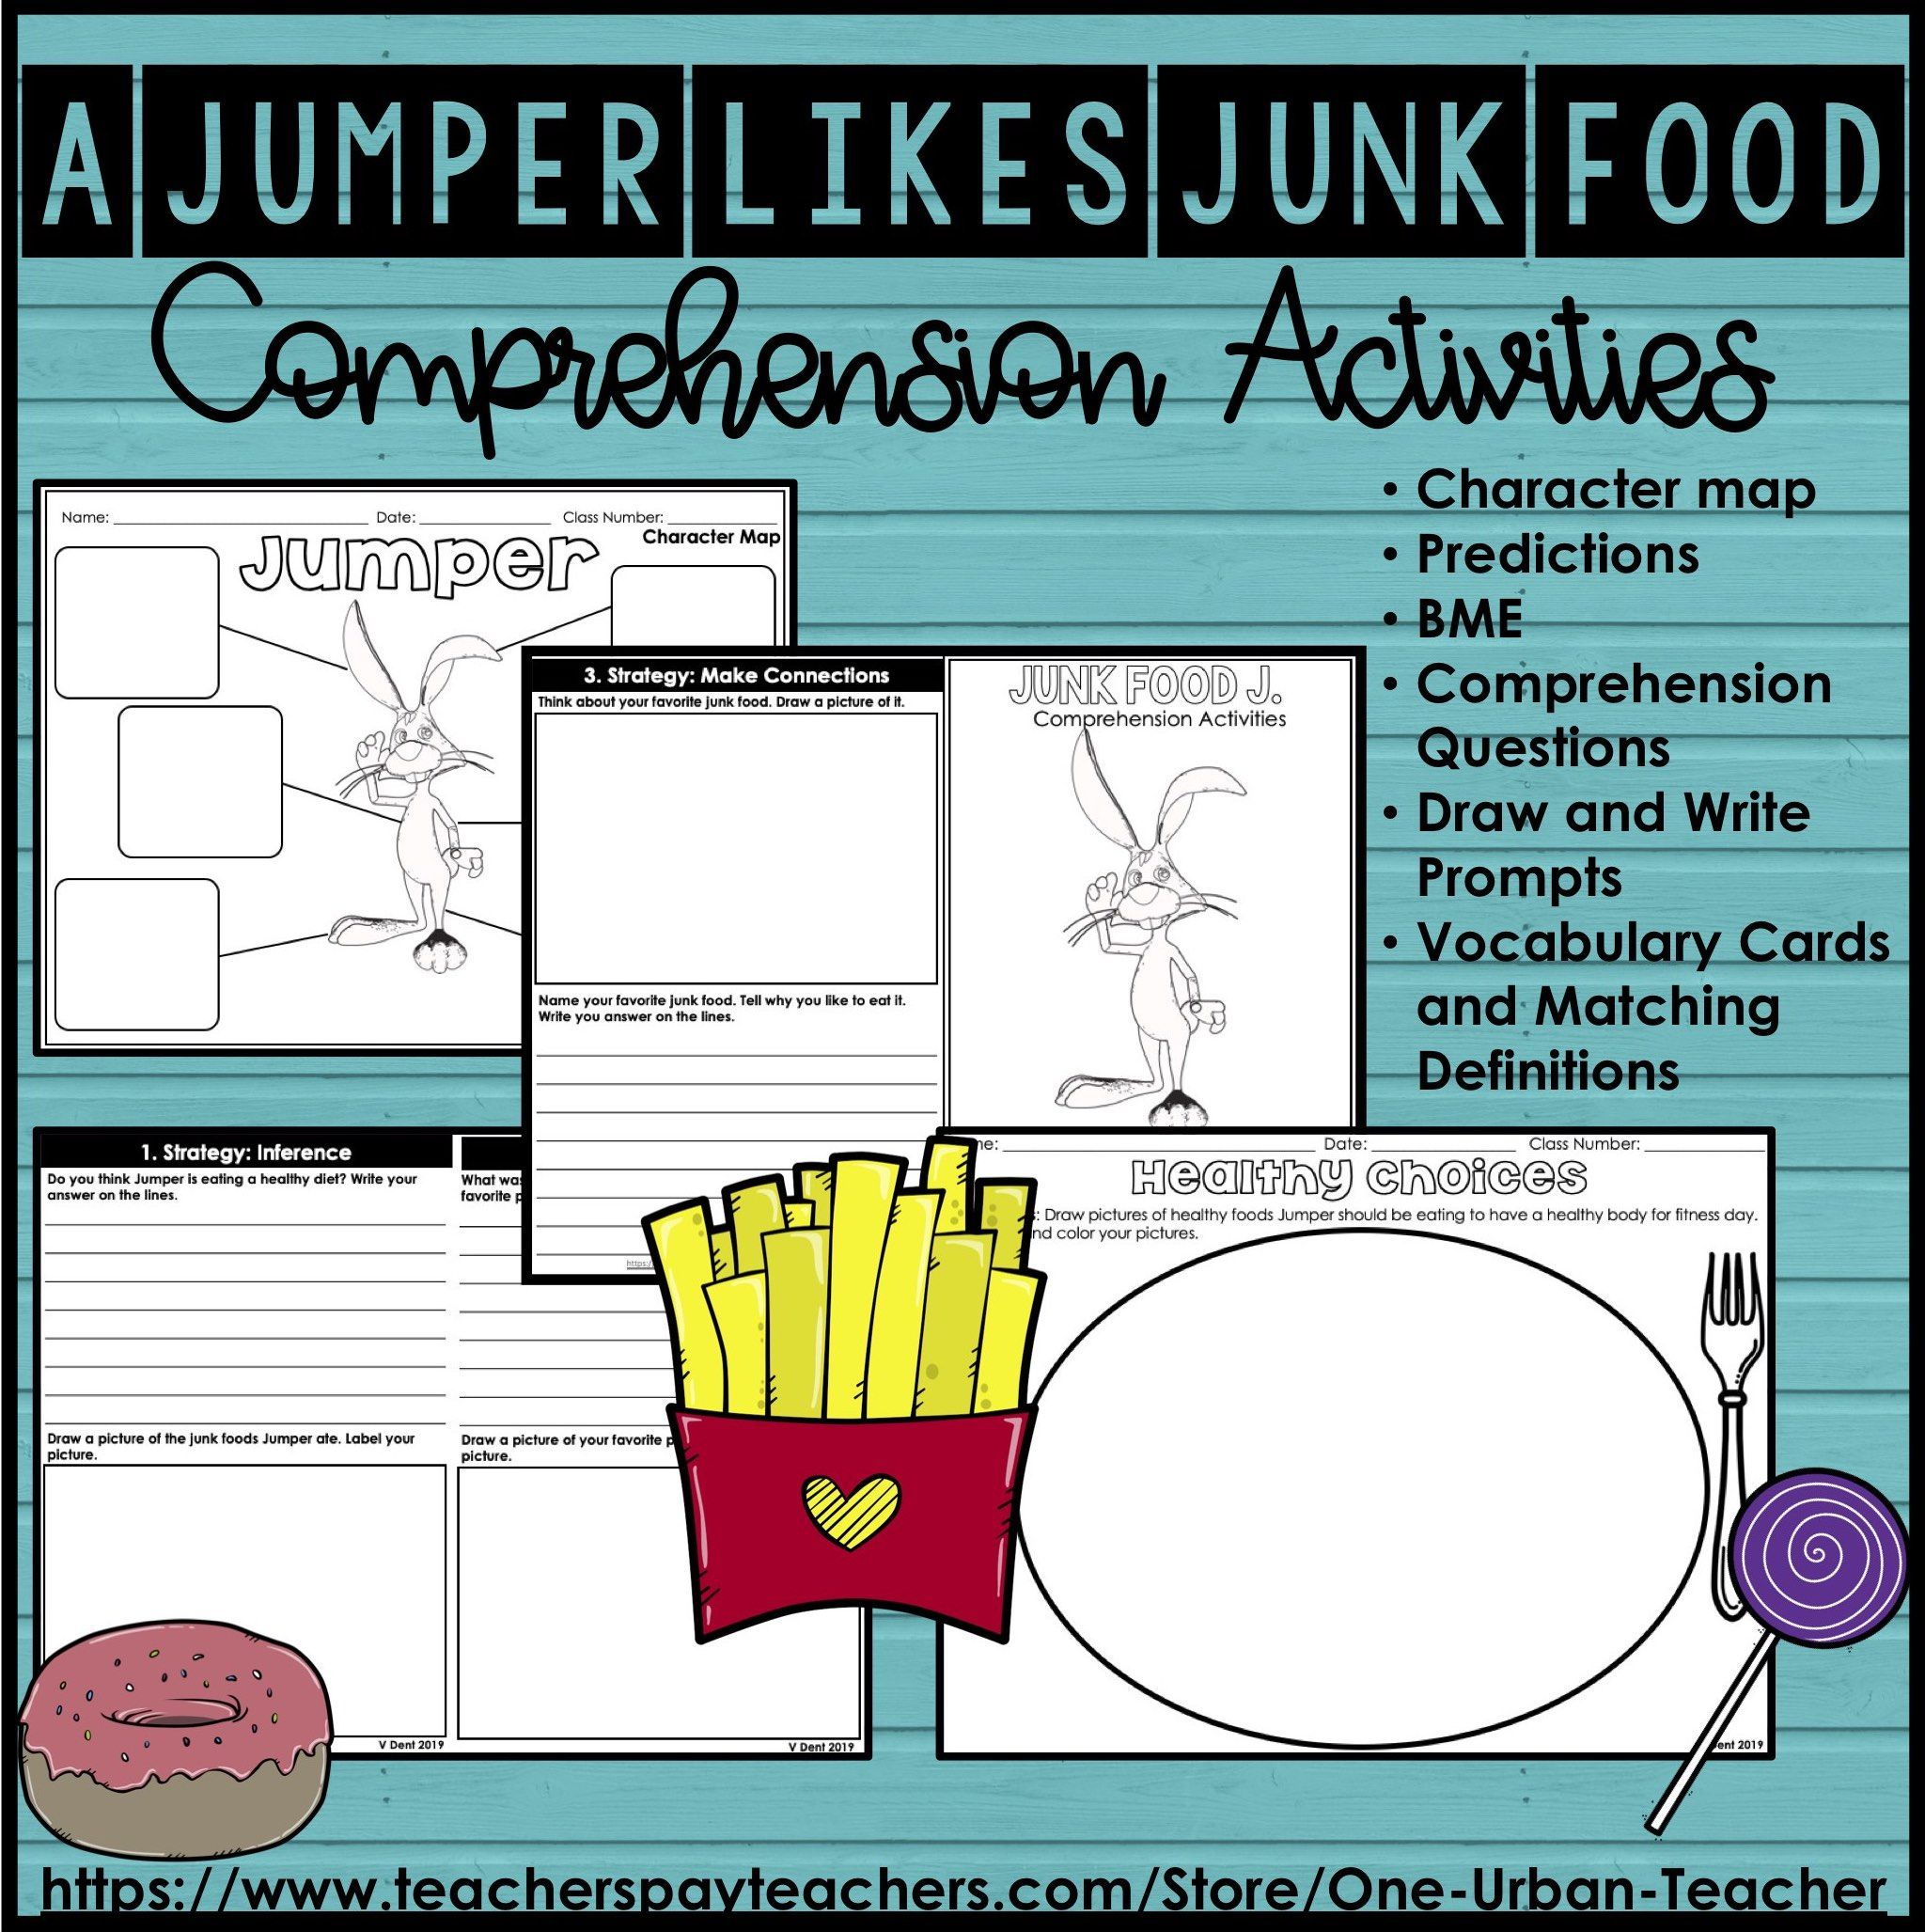 A Jumper Likes Junk Food Comprehension Activities